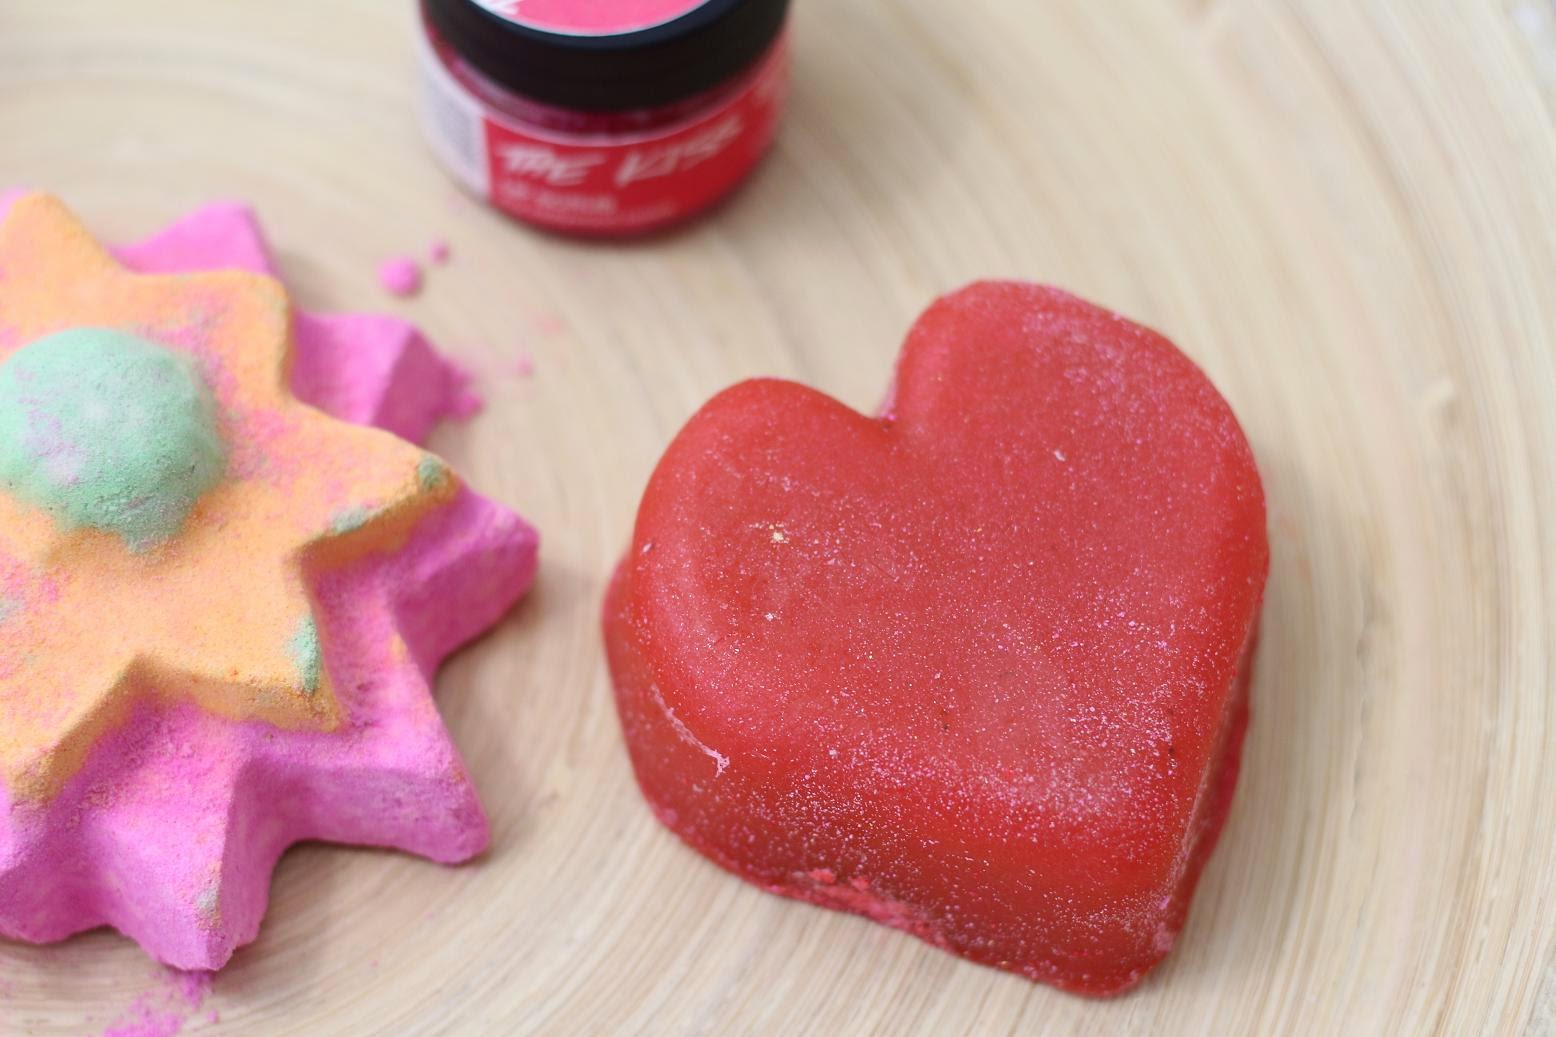 Lush Cupid's Love soap